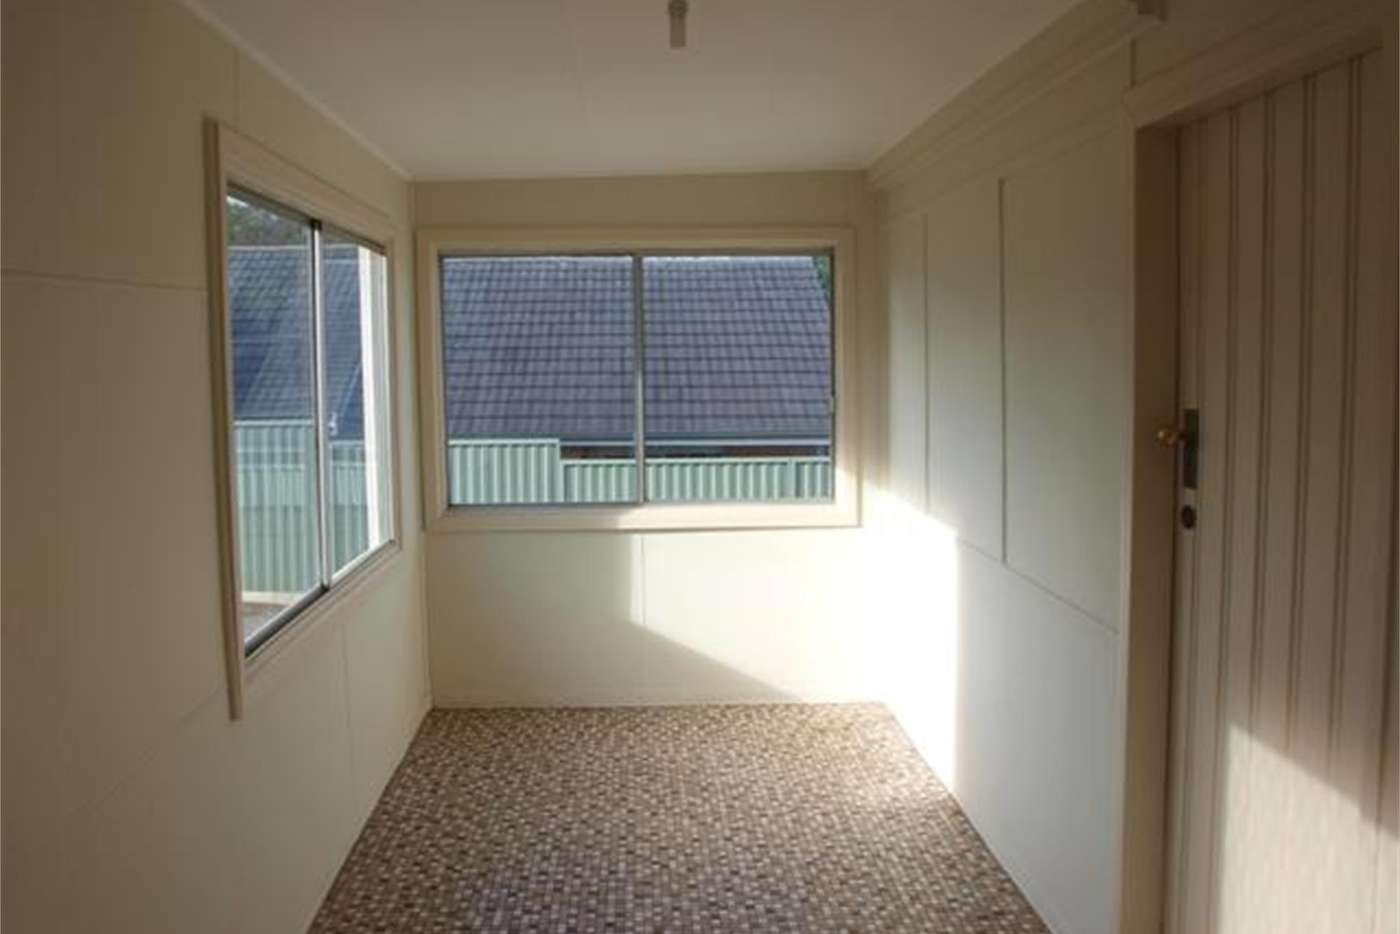 Sixth view of Homely house listing, 38 Nicoll Street, Roselands NSW 2196